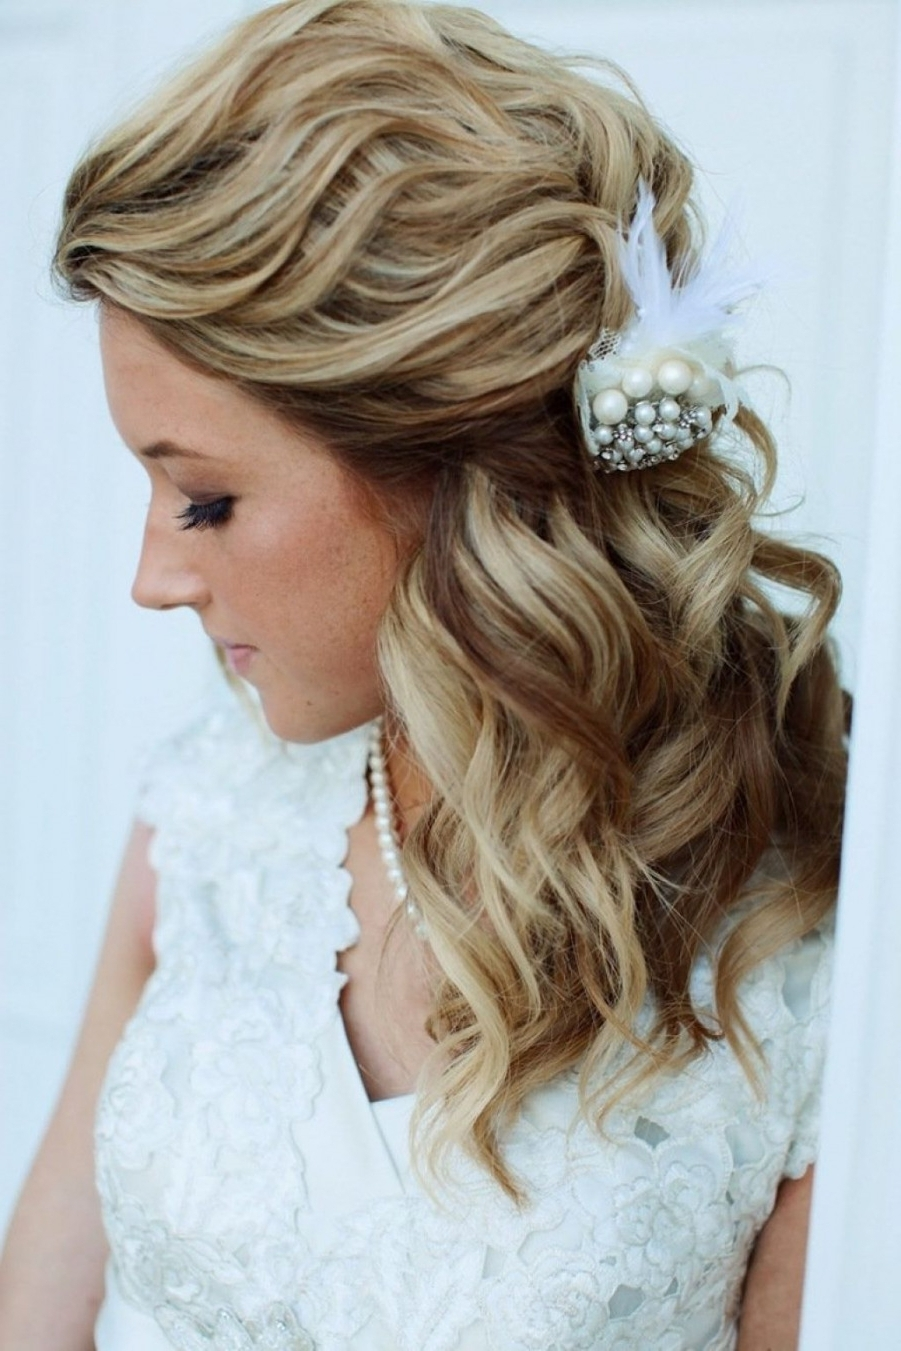 Most Popular Wedding Hairstyles For Bridesmaids With Medium Length Hair Regarding Bridesmaid Hairstyles Medium Length Hair – The Latest Trend Of (View 8 of 15)